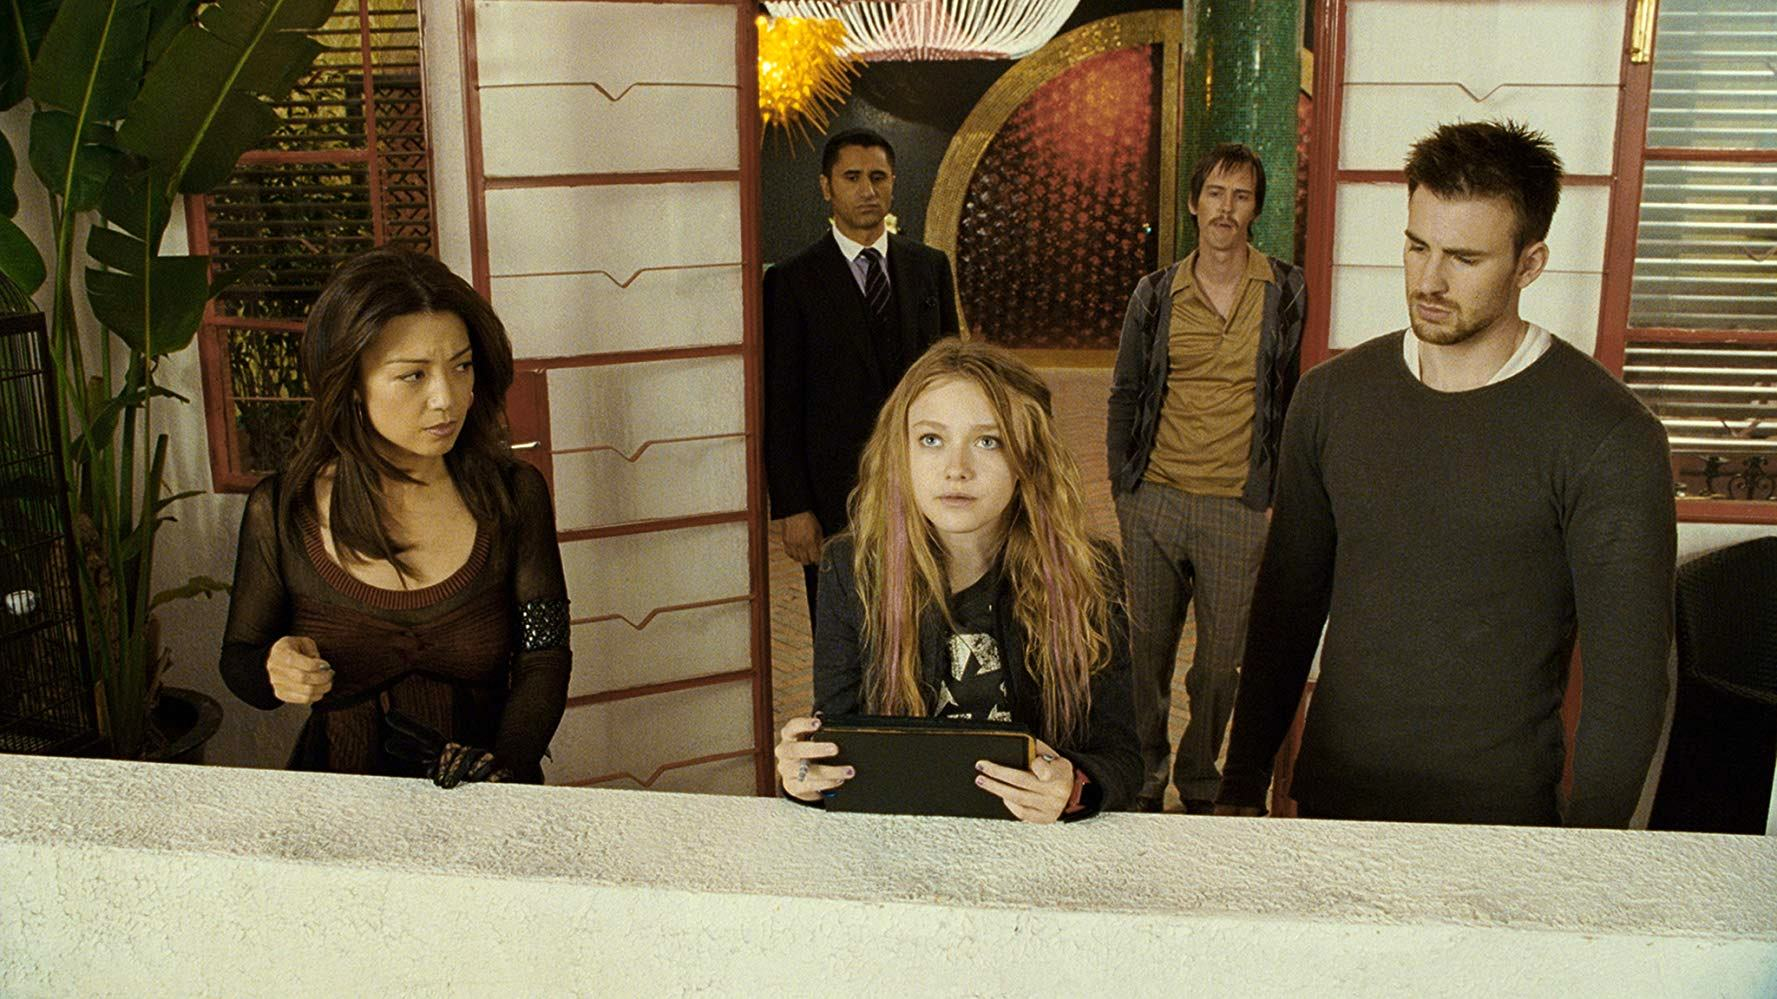 Hatching the scheme - (l to r) (front) Ming-Na, Dakota Fanning and Chris Evans; (back) Cliff Curtis and Nate Mooney in Push (2009)